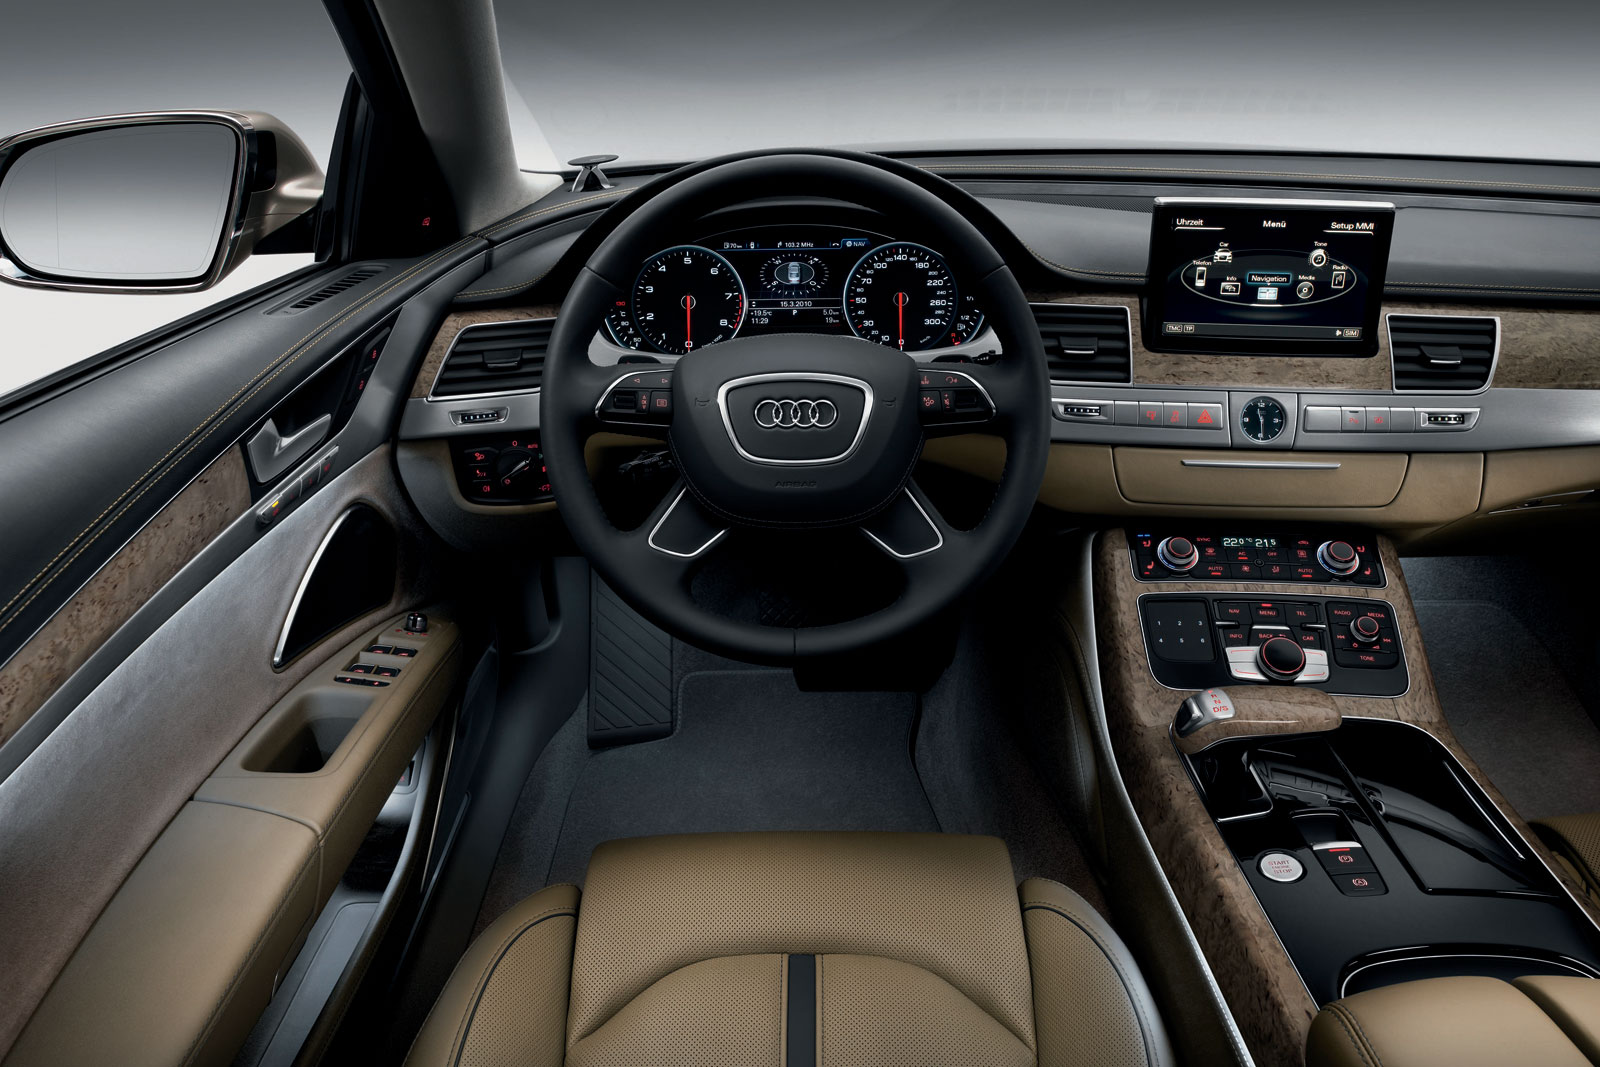 Ward s Auto Announces the 10 Best Car Interiors of 2011   Carscoops TagsAudi